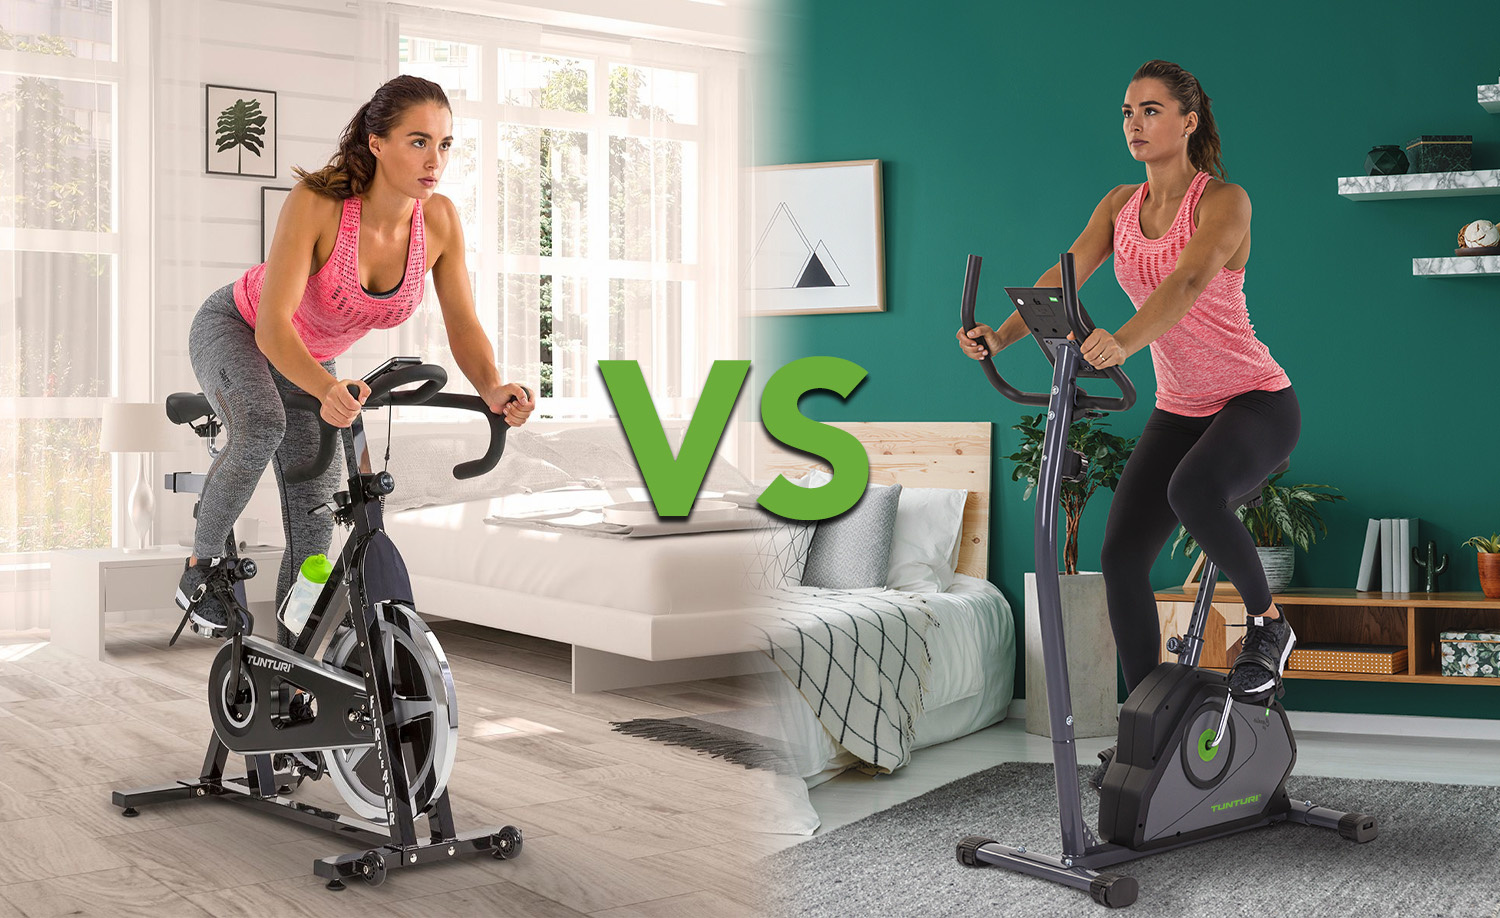 The differences between a sprinter bike and an exercise bike